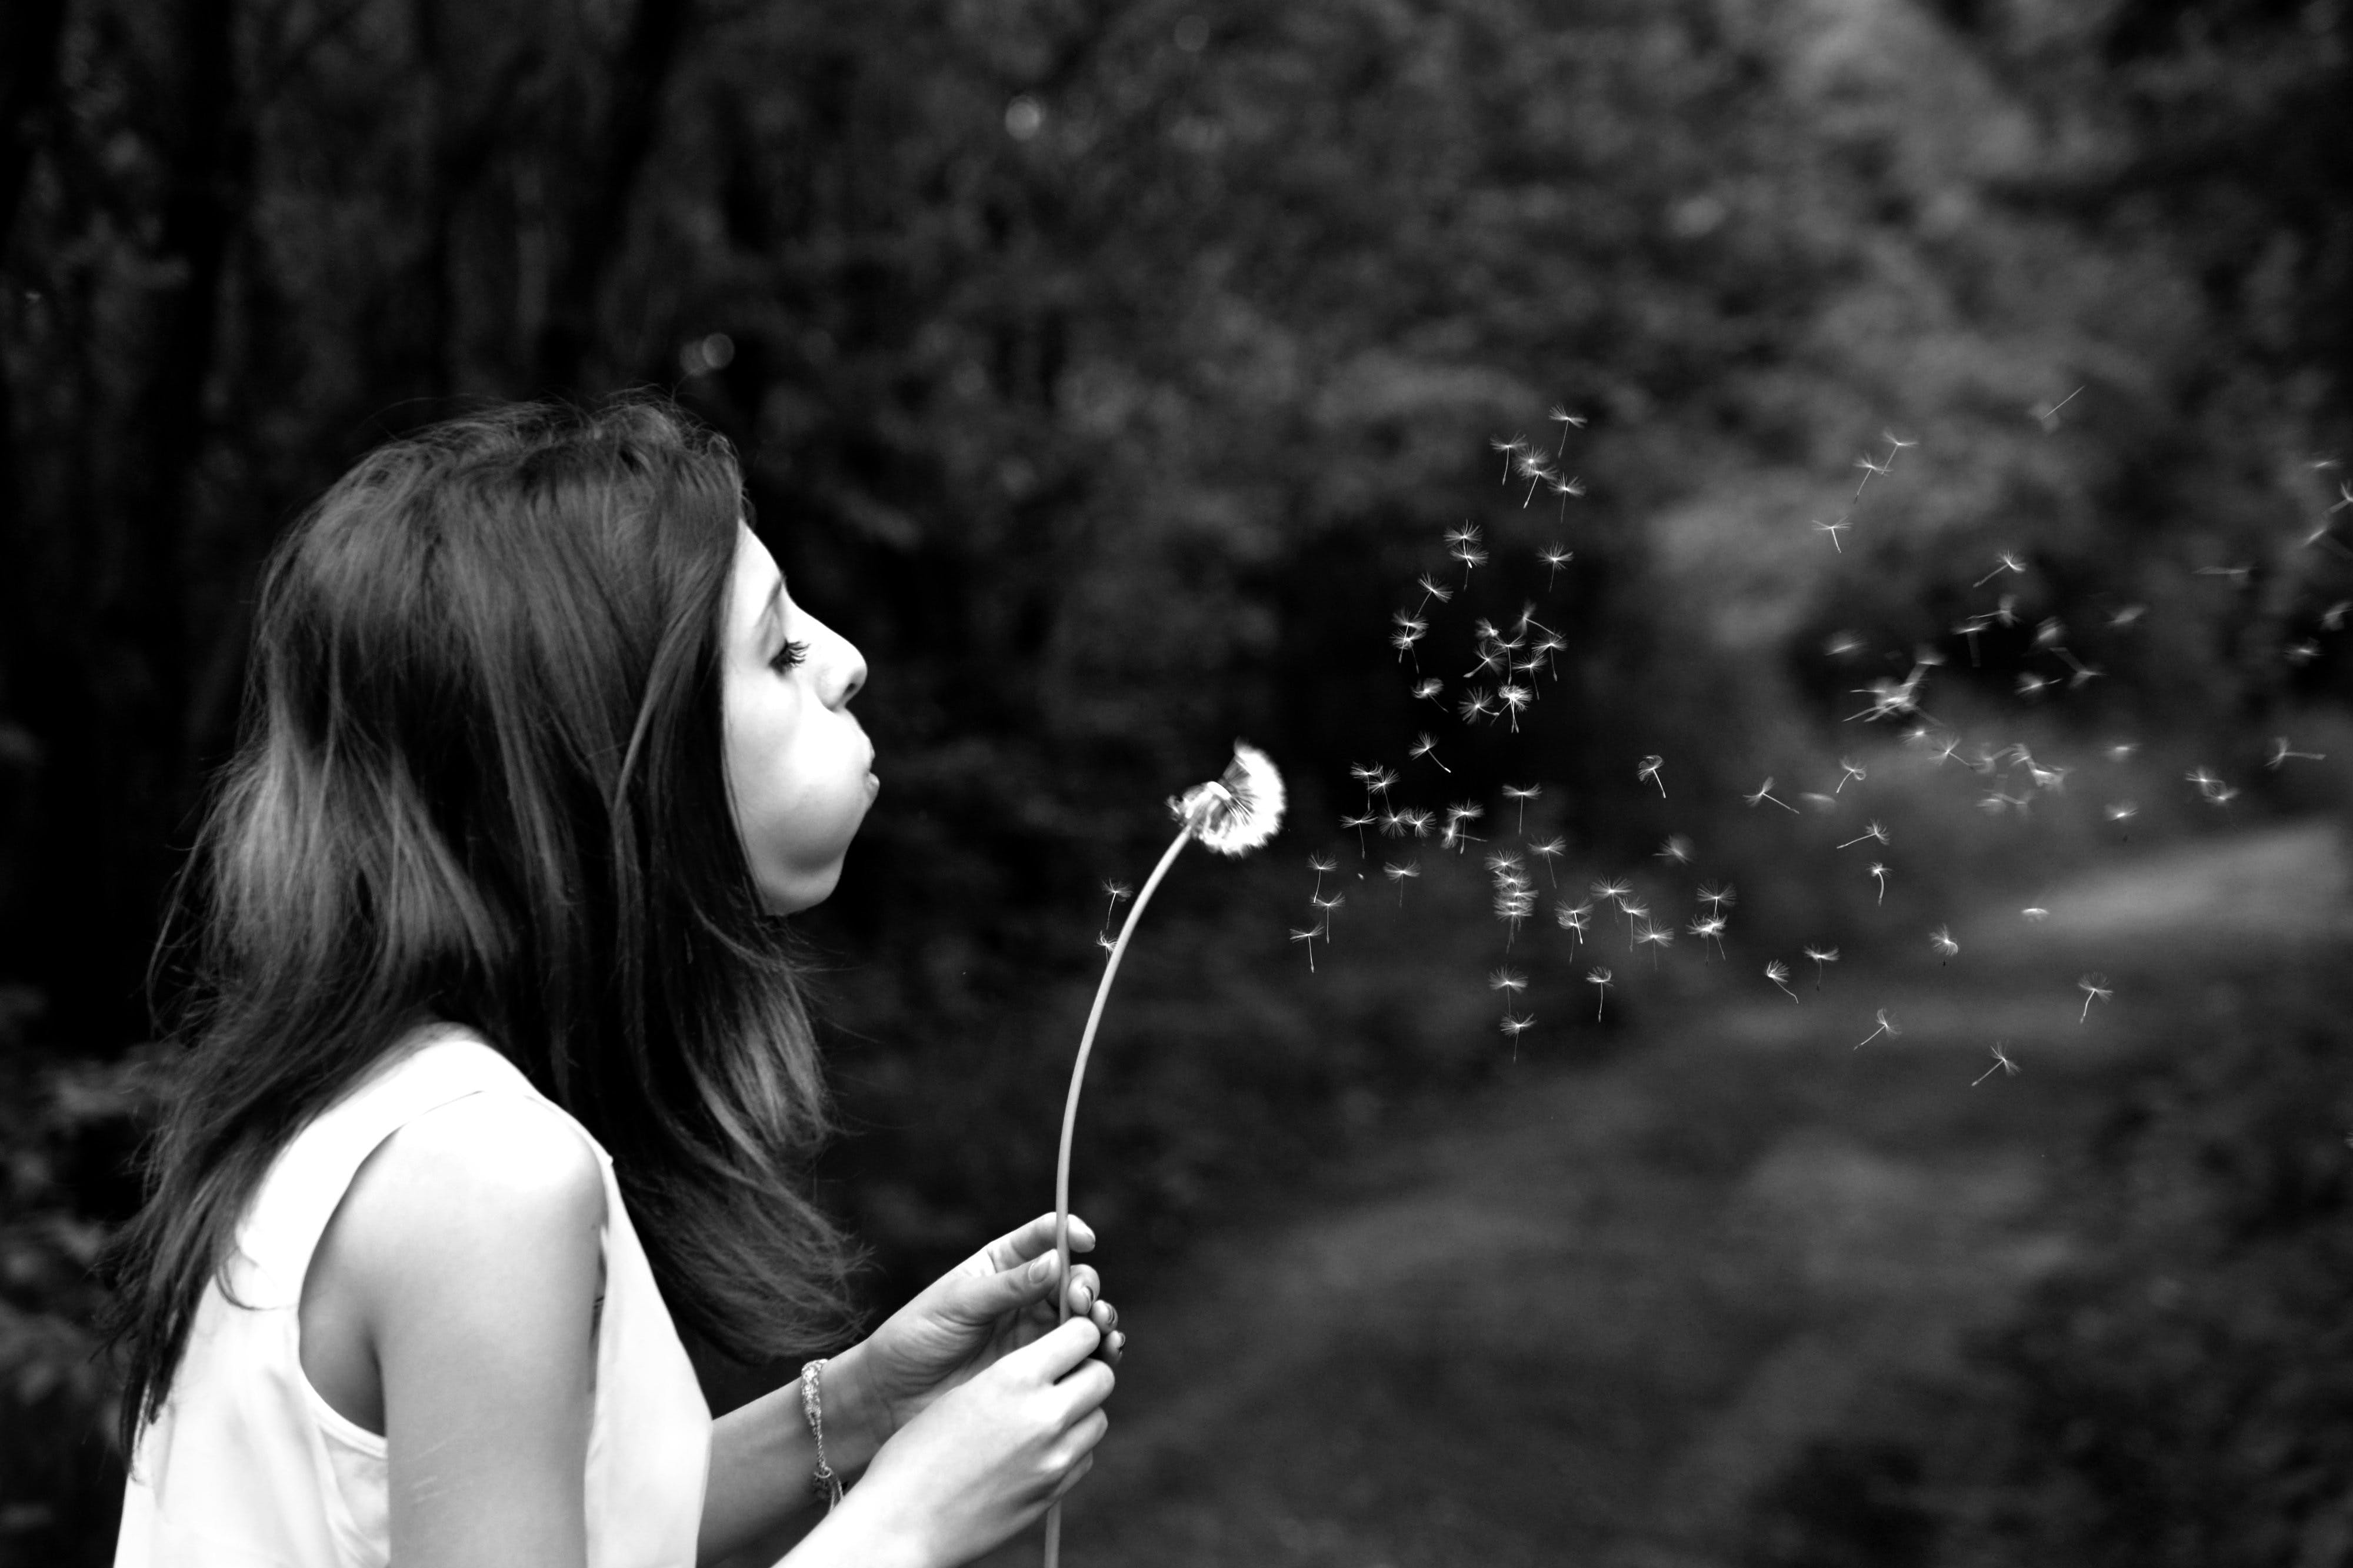 Woman in Tank Top Blowing Dandelion in Grayscale Photography